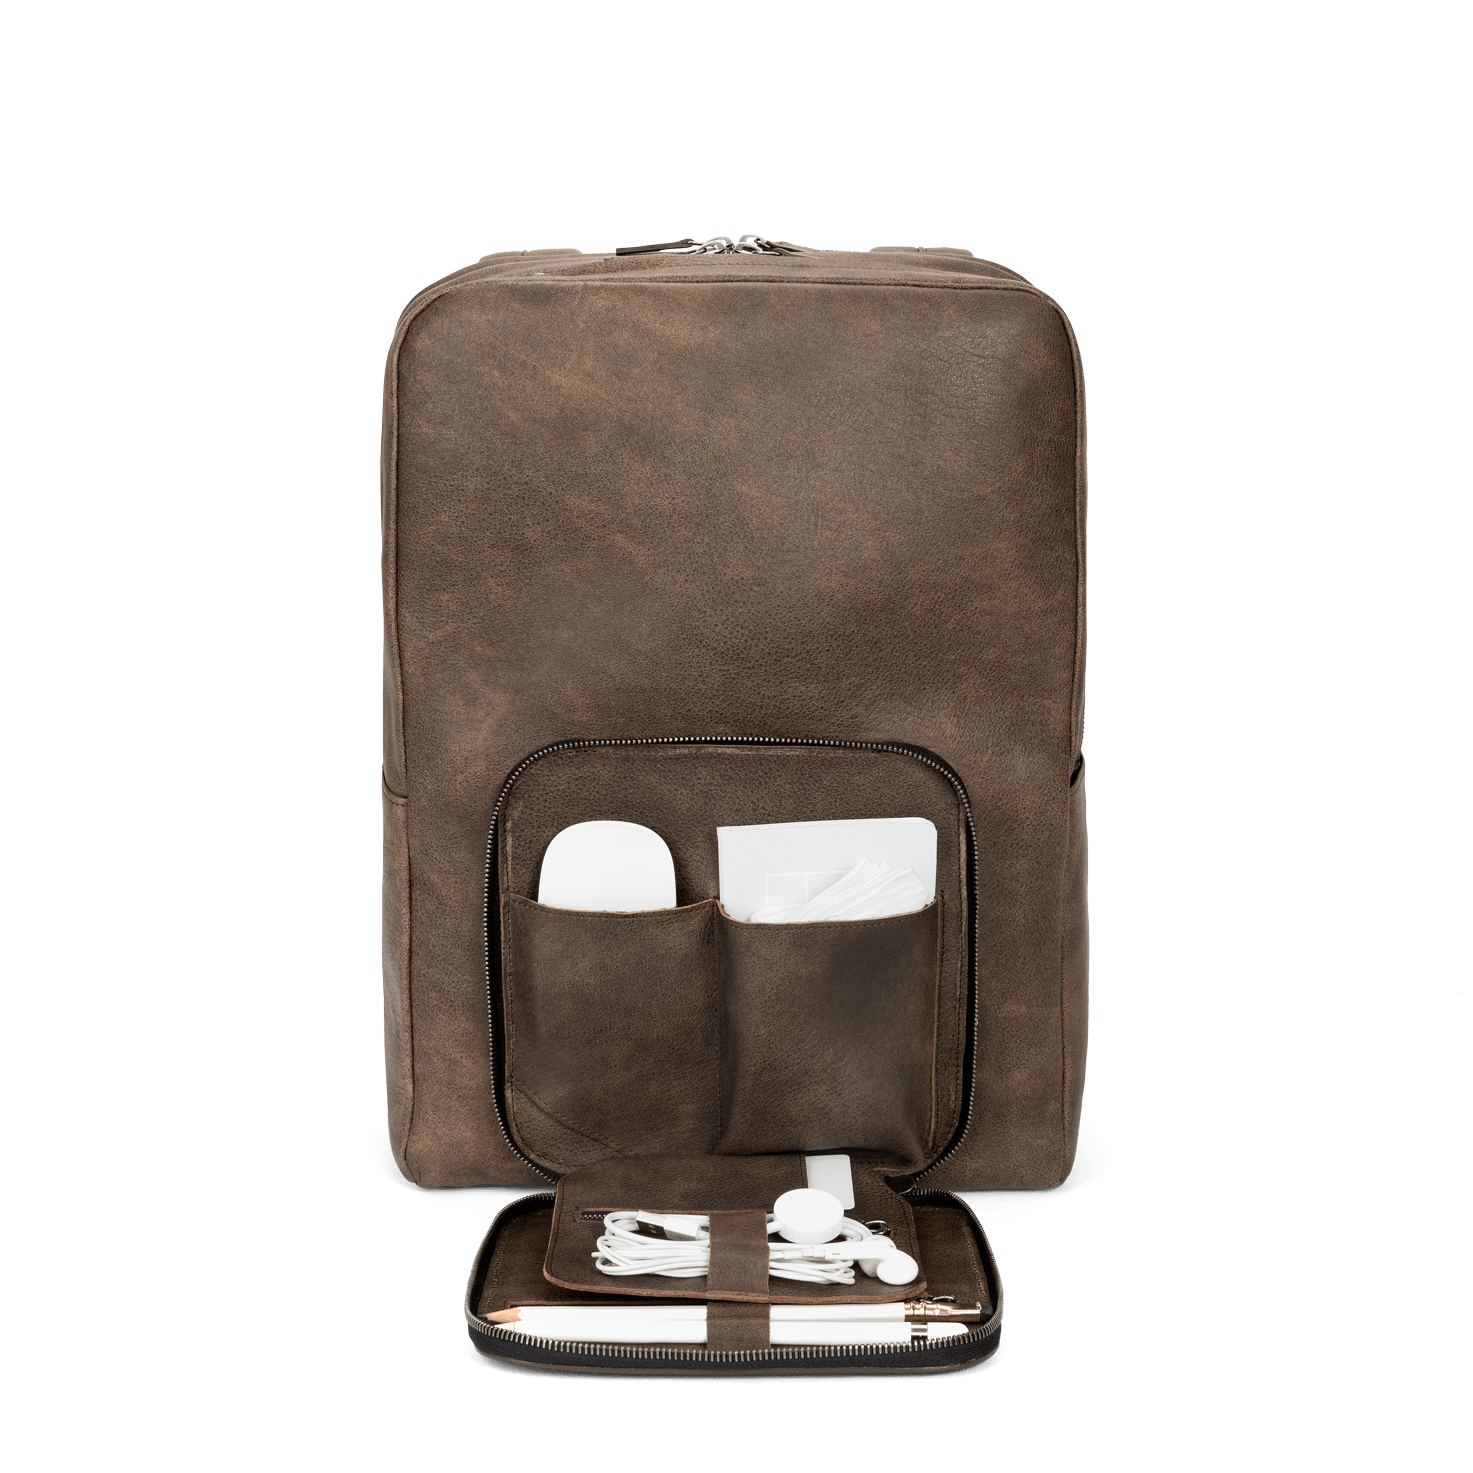 VENTURE 2 BACKPACK - DELUXE PACKAGE